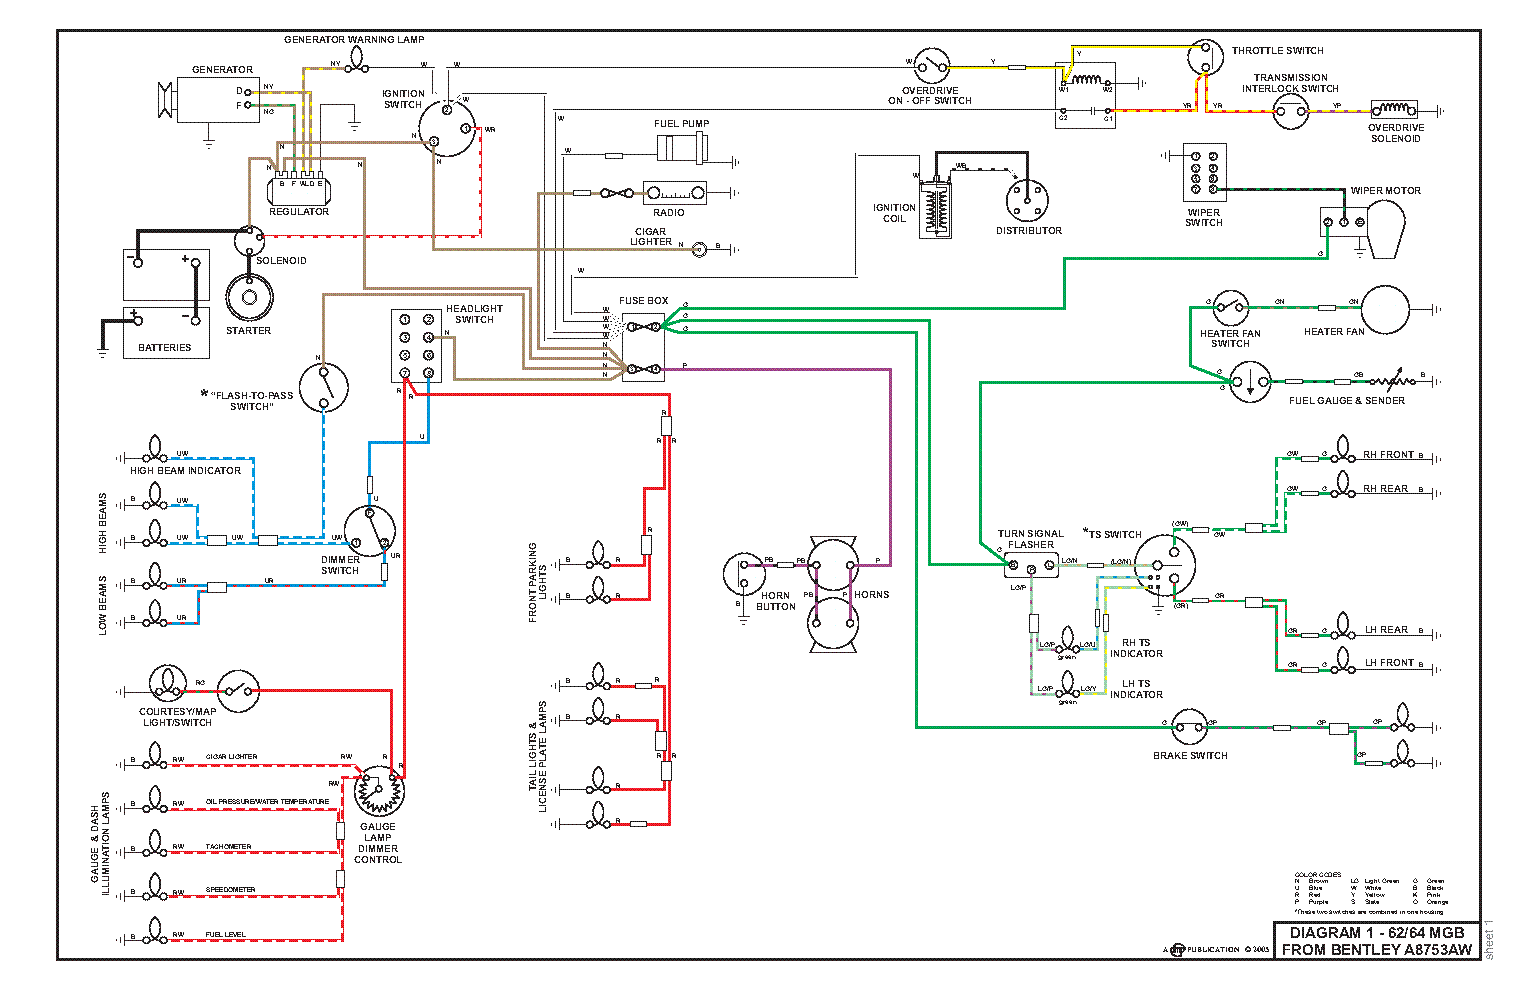 bentley_mg_b_car_wiring_diagrams.pdf_1 wiring diagram for ford f250 wiring schematics and diagrams 30 Amp RV Wiring Diagram at soozxer.org